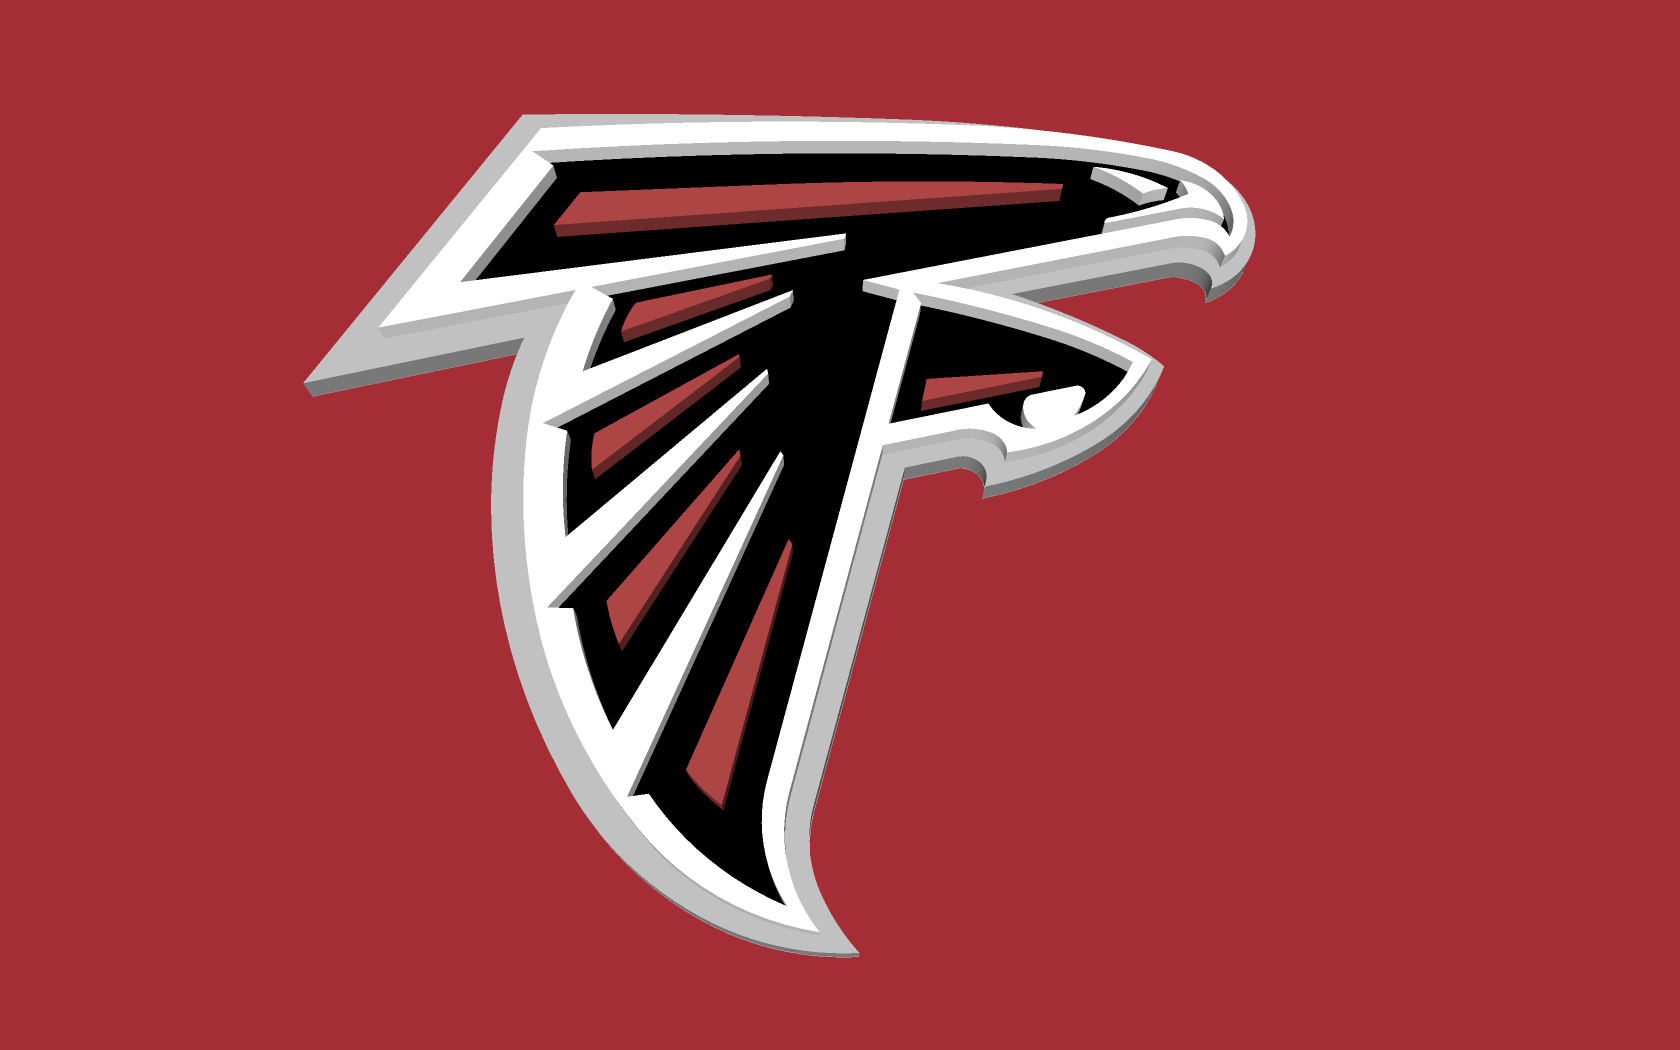 Atlanta Falcon Wallpapers Group 60: Atlanta Falcons By Obilach On DeviantArt